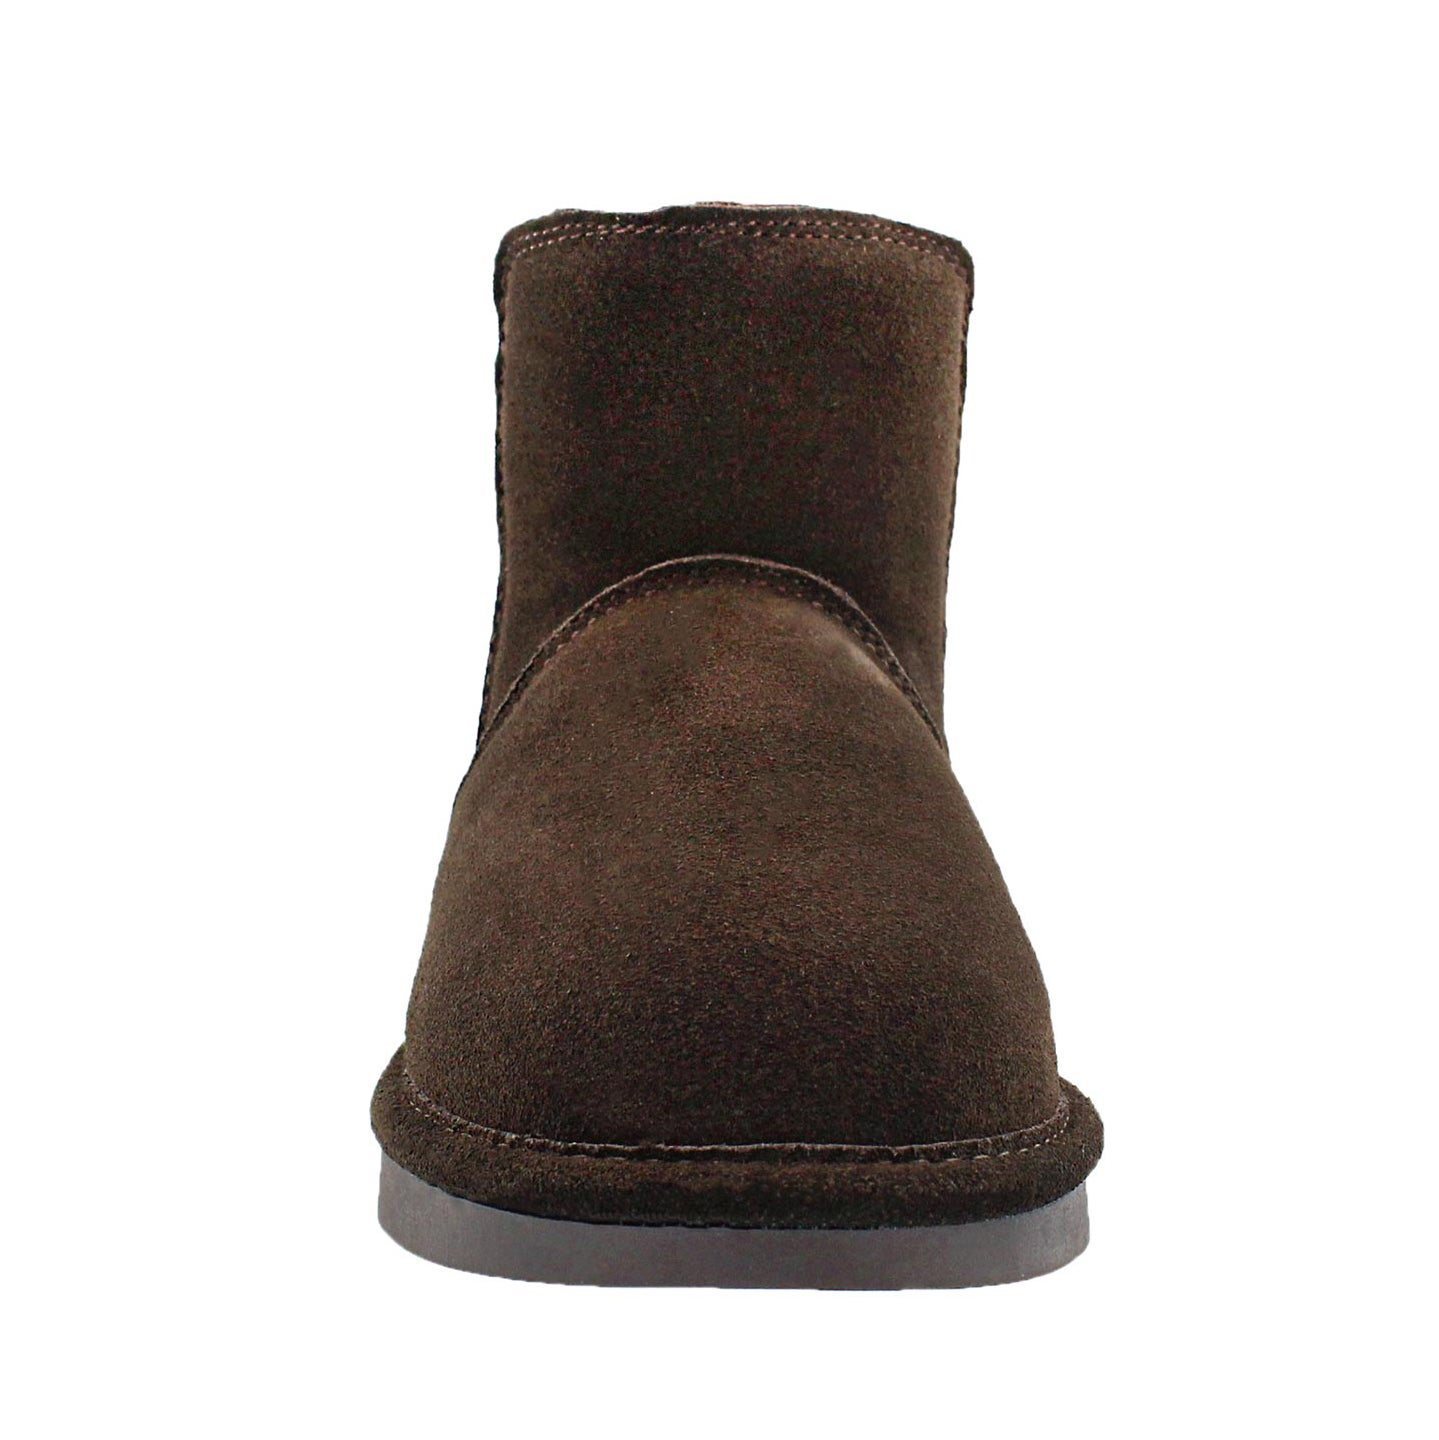 Lds Smocs 5 choc chelsea suede boot